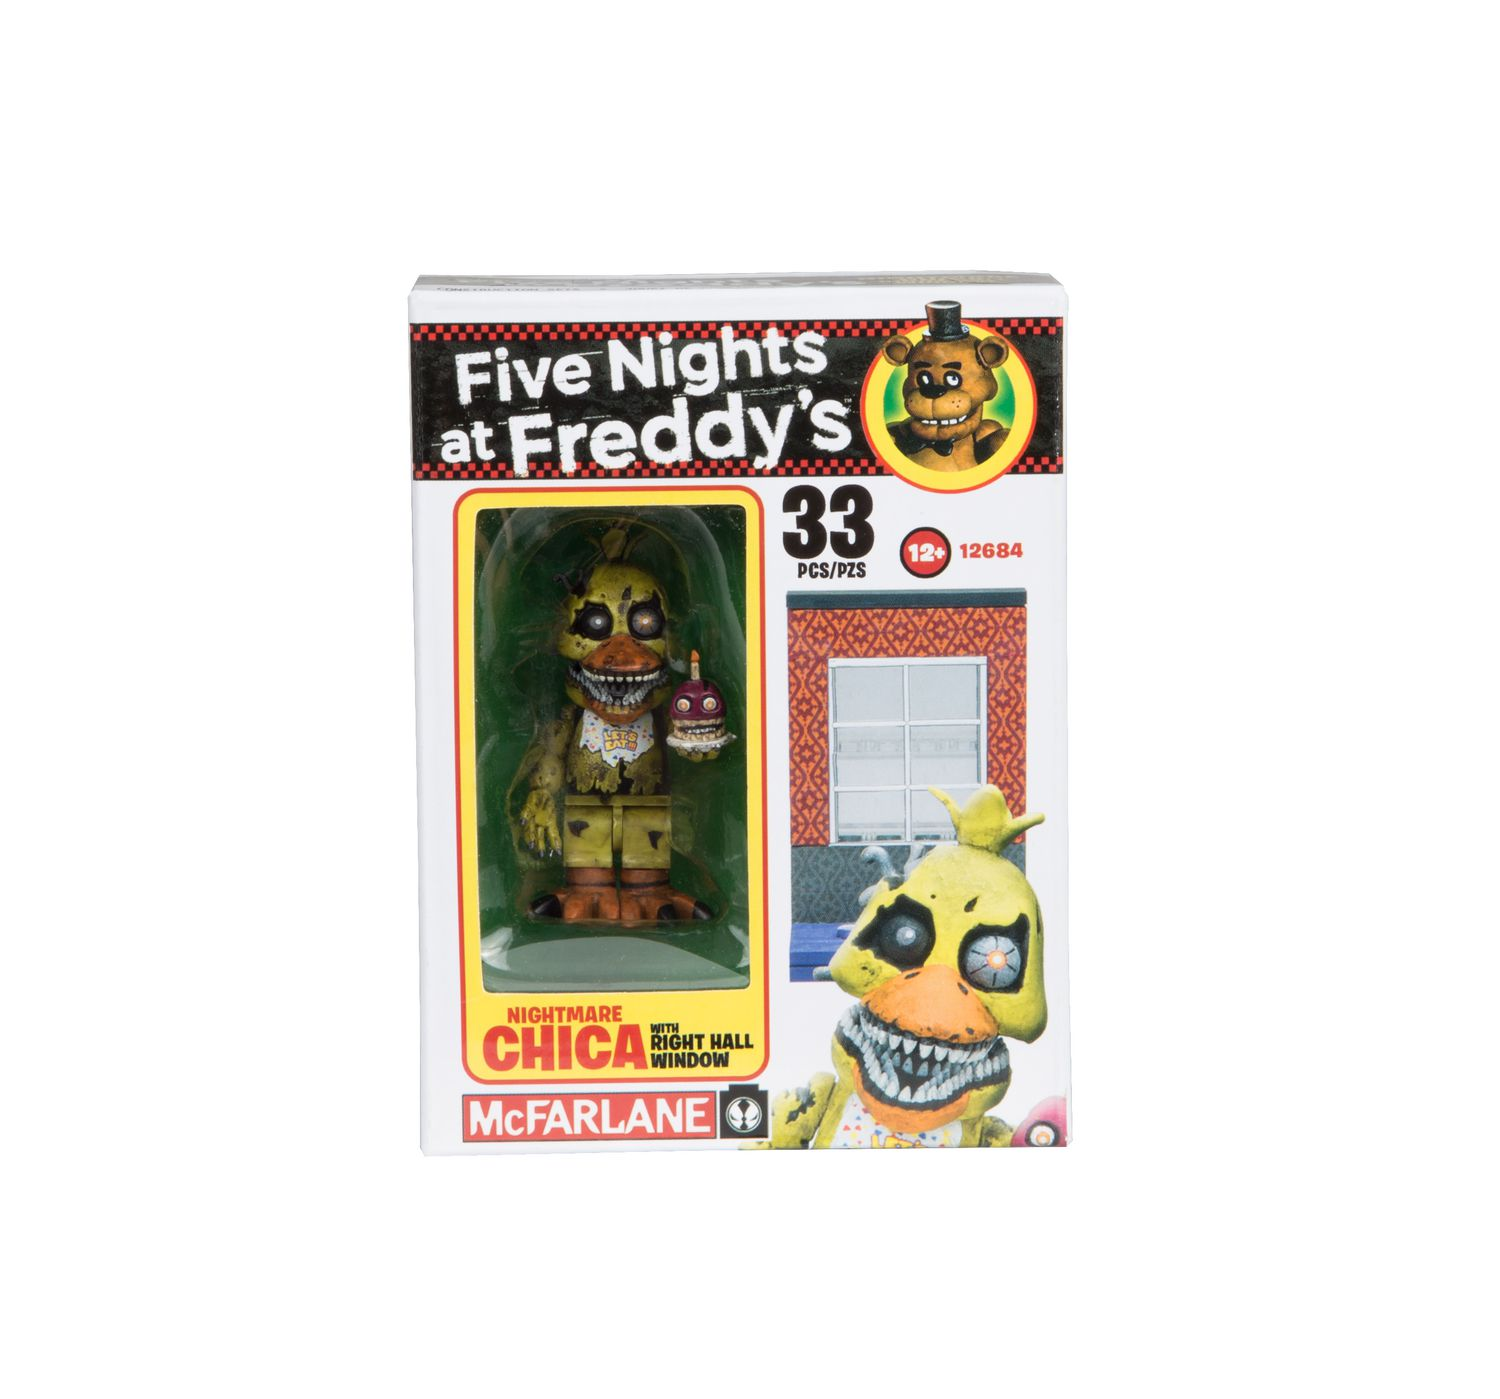 McFarlane Five Nights at Freddy's Season 2 Micro Construction Set -  Nightmare Chica with Right Hall Window